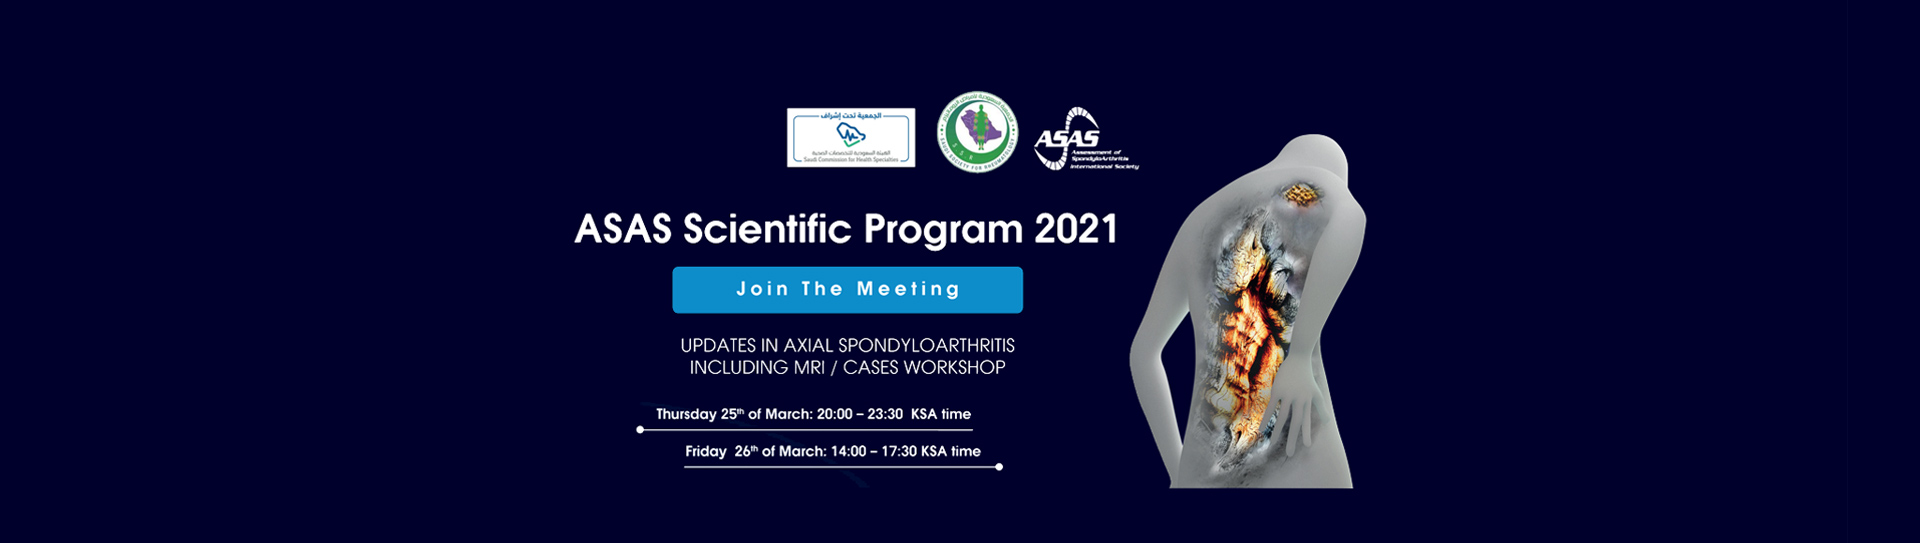 ASAS scientific Program